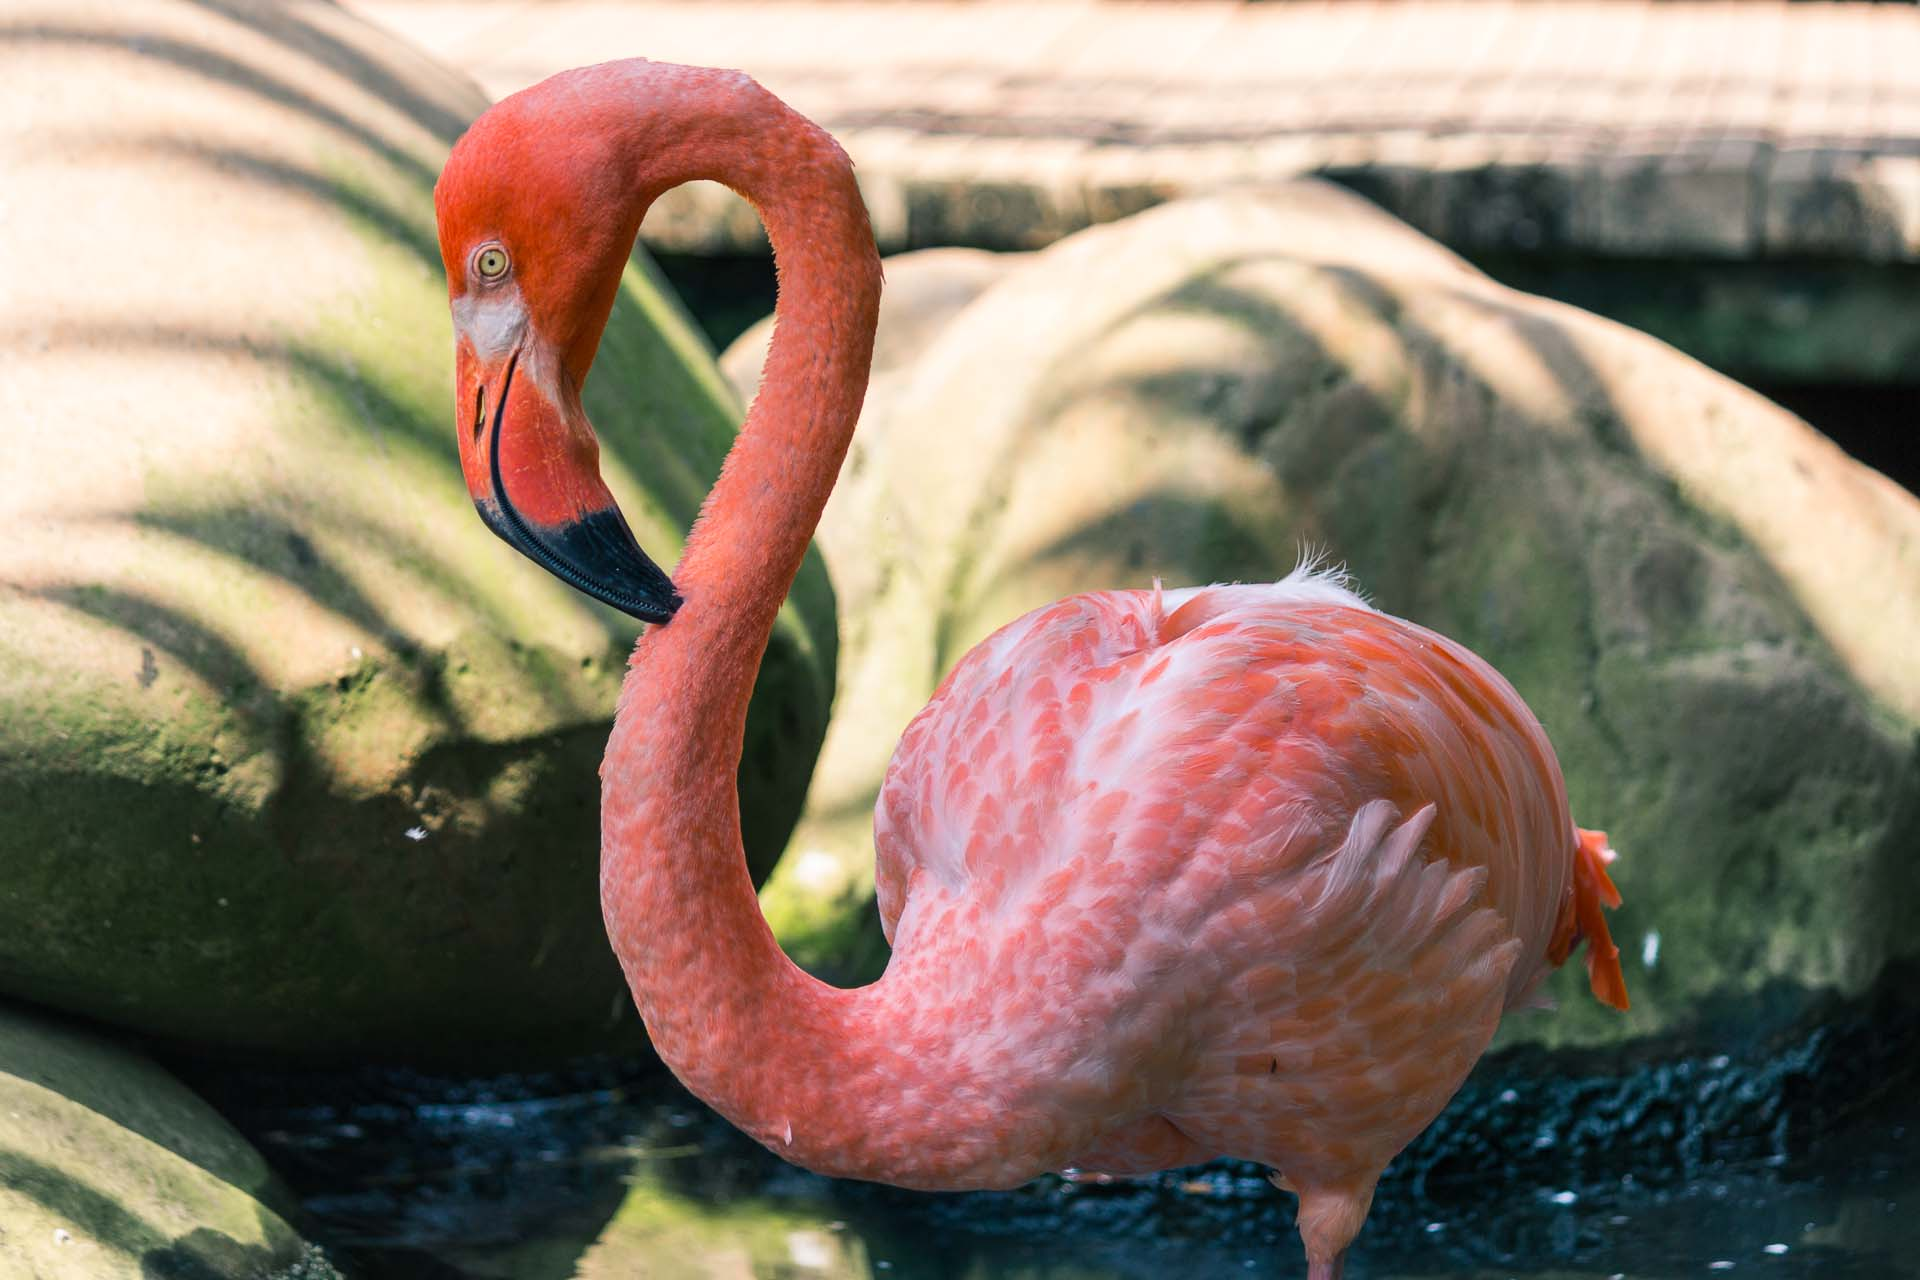 A flamingo at Yumka, a safari/interactive zoo close to the city.